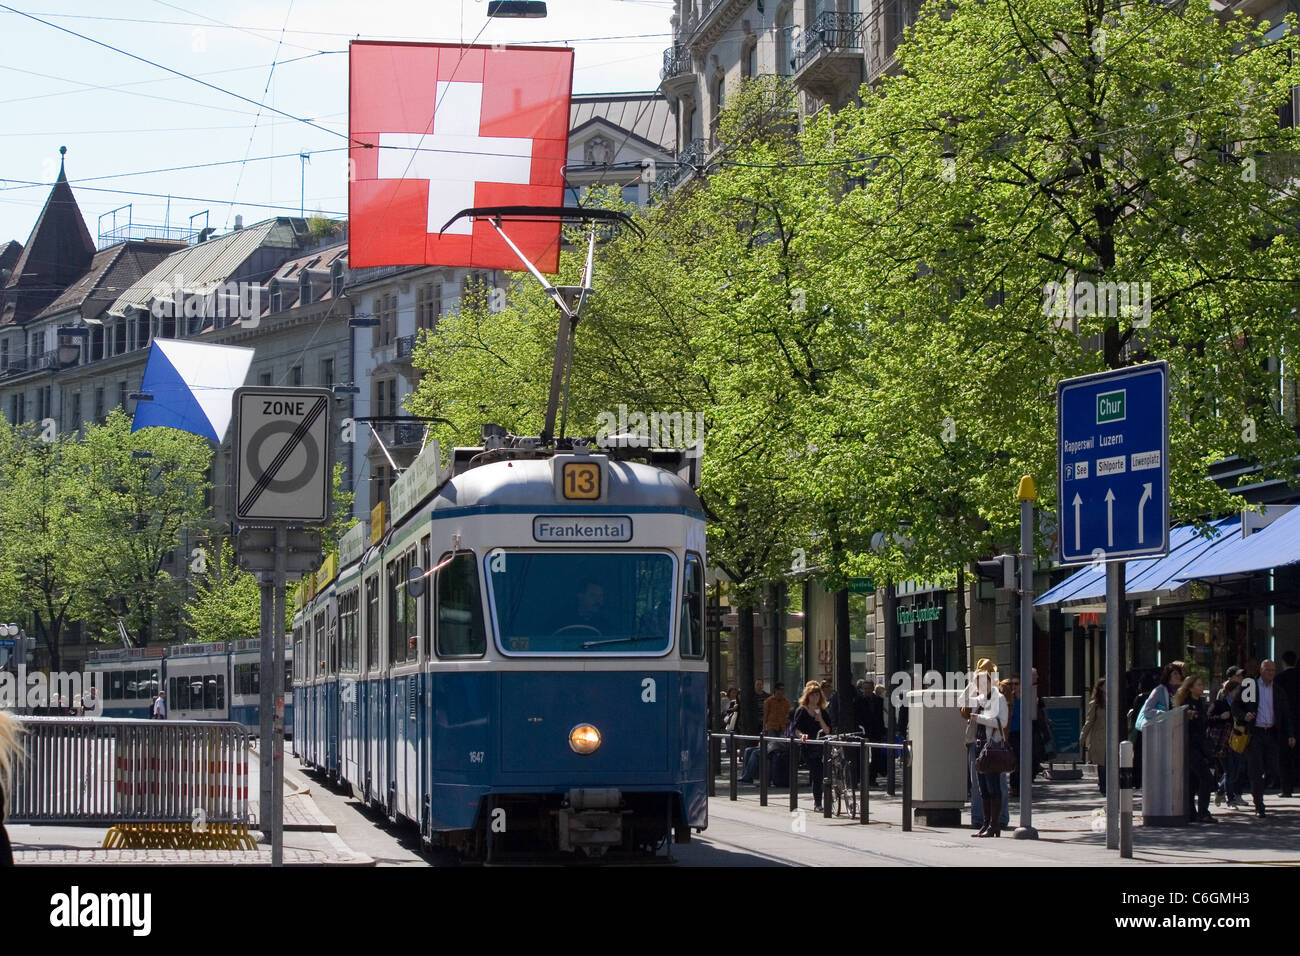 view of Bahnhofstrasse, Zurich, Switzerland - Stock Image